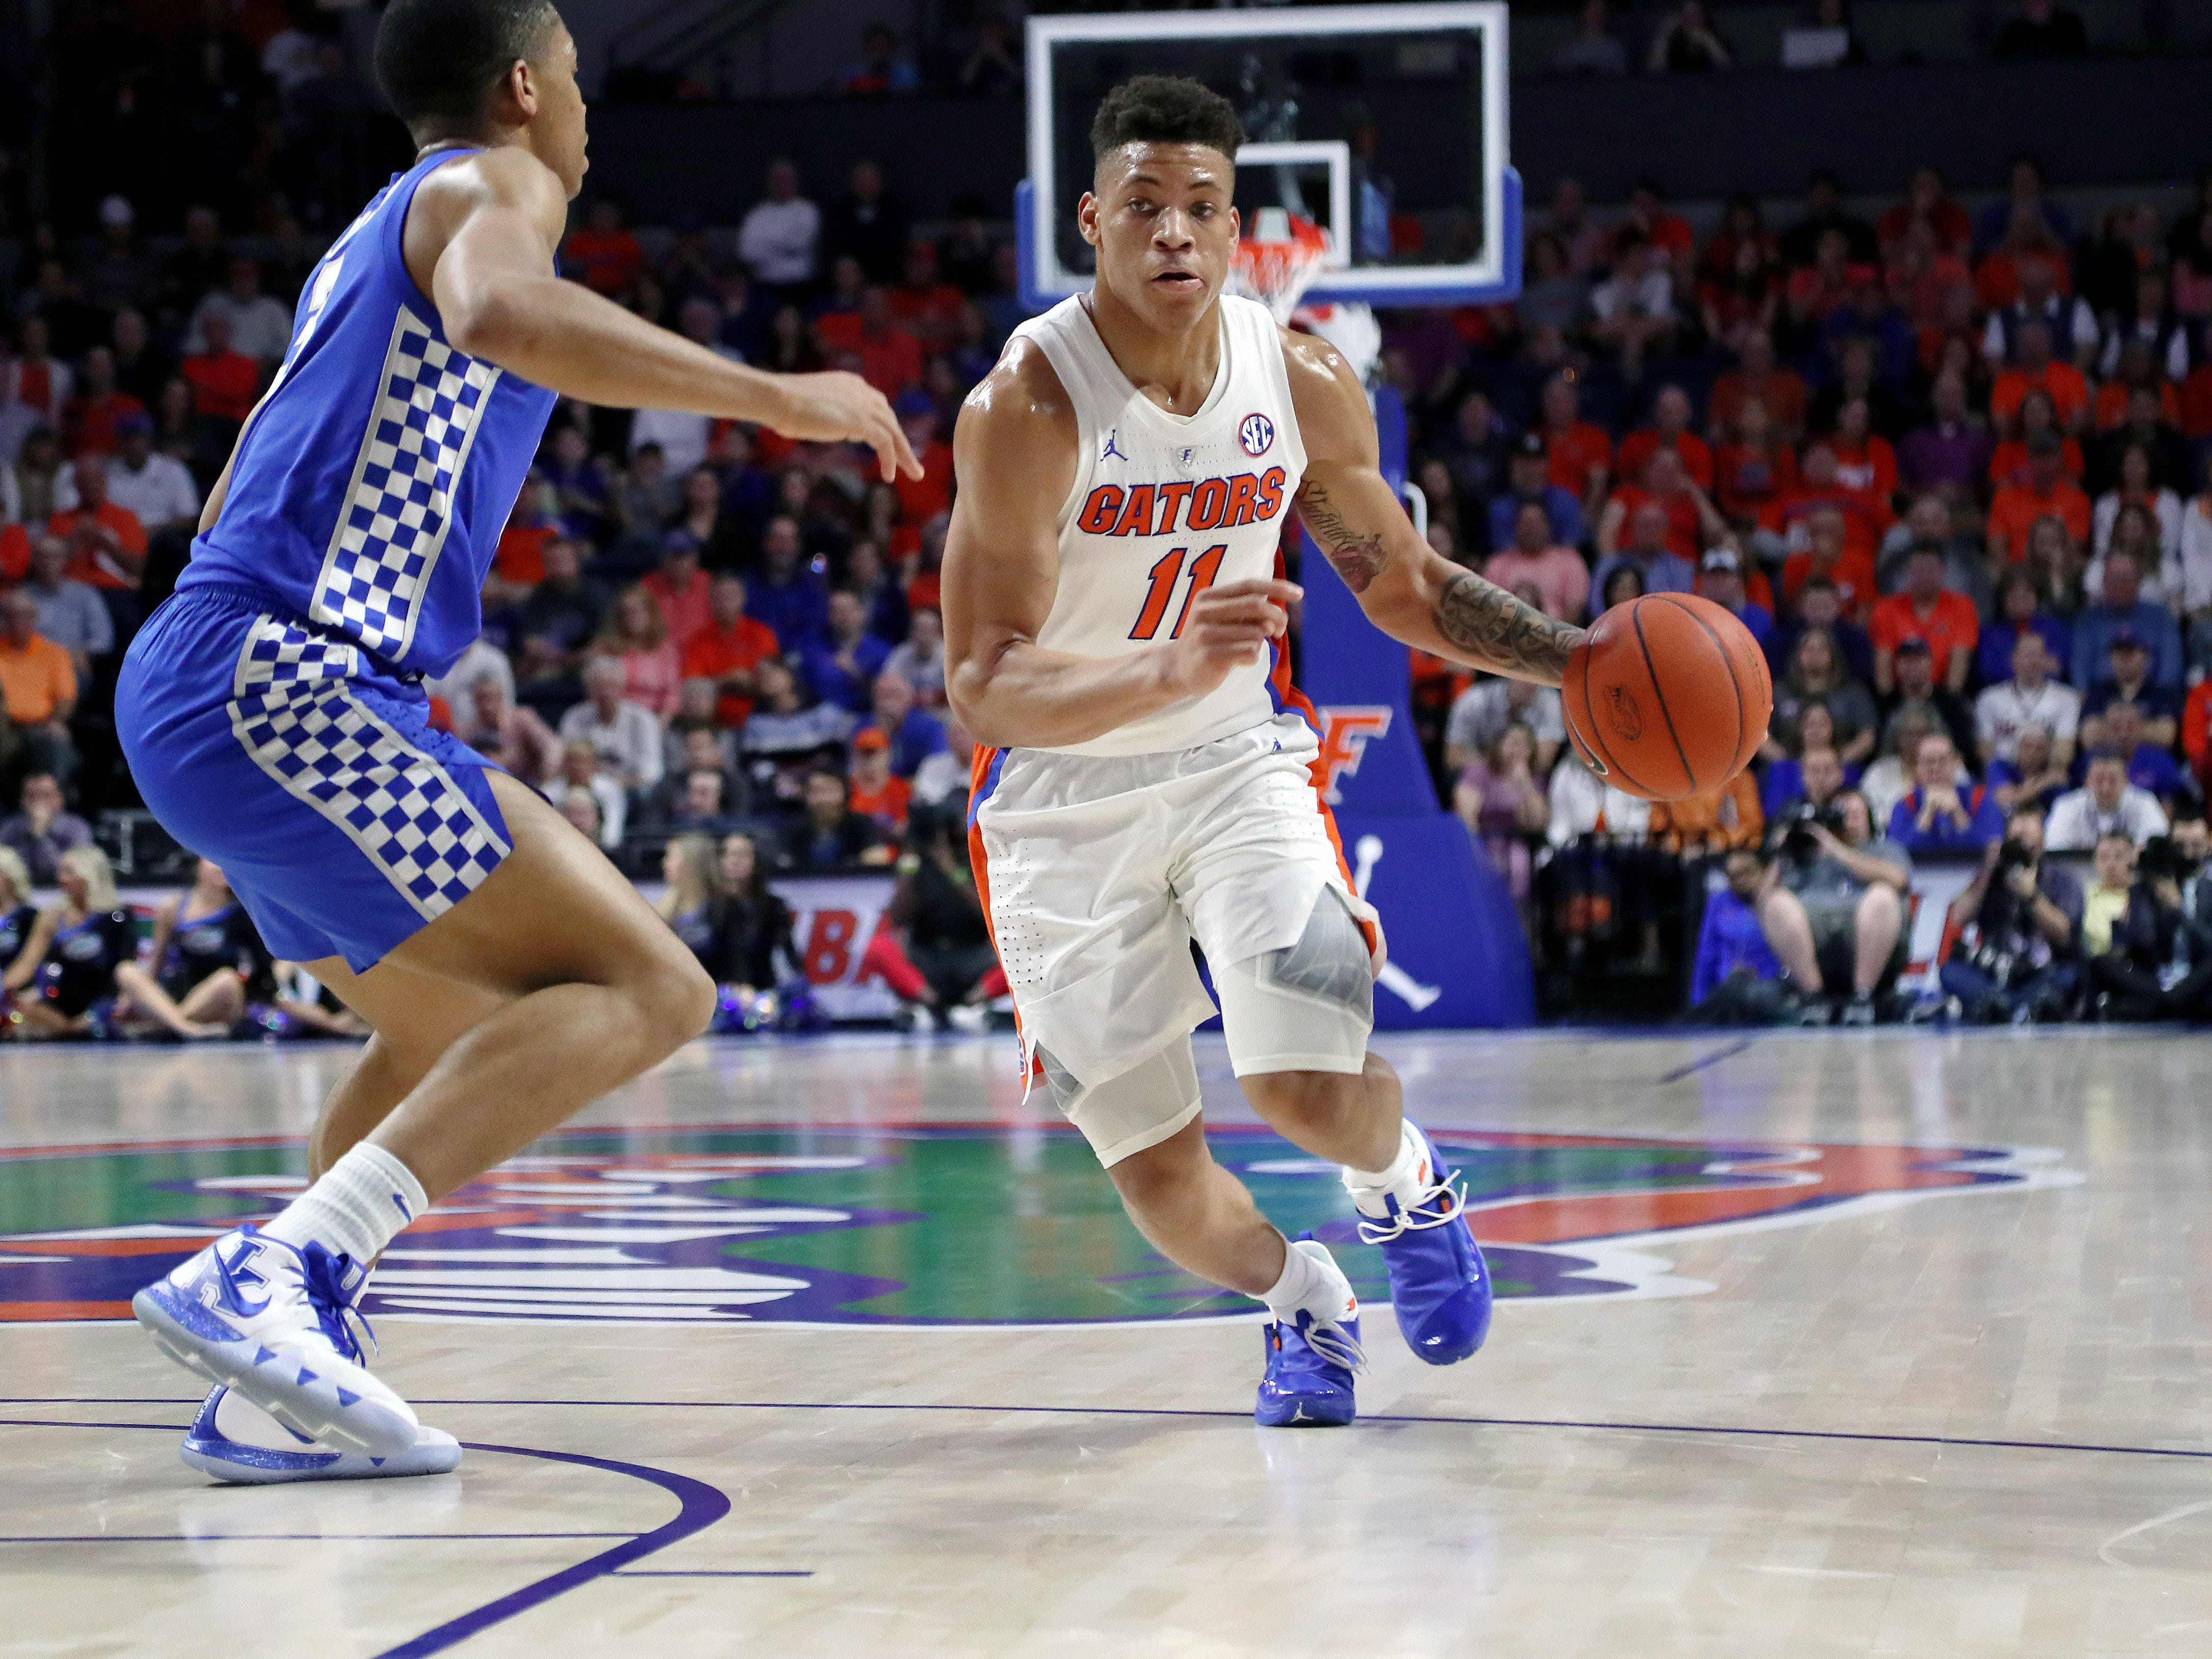 Florida Gators forward Keyontae Johnson (11) drives to the basket as Kentucky Wildcats guard Keldon Johnson (3) defends during the first half at Exactech Arena in Gainesville, Florida, on Saturday, Feb. 2, 2019.